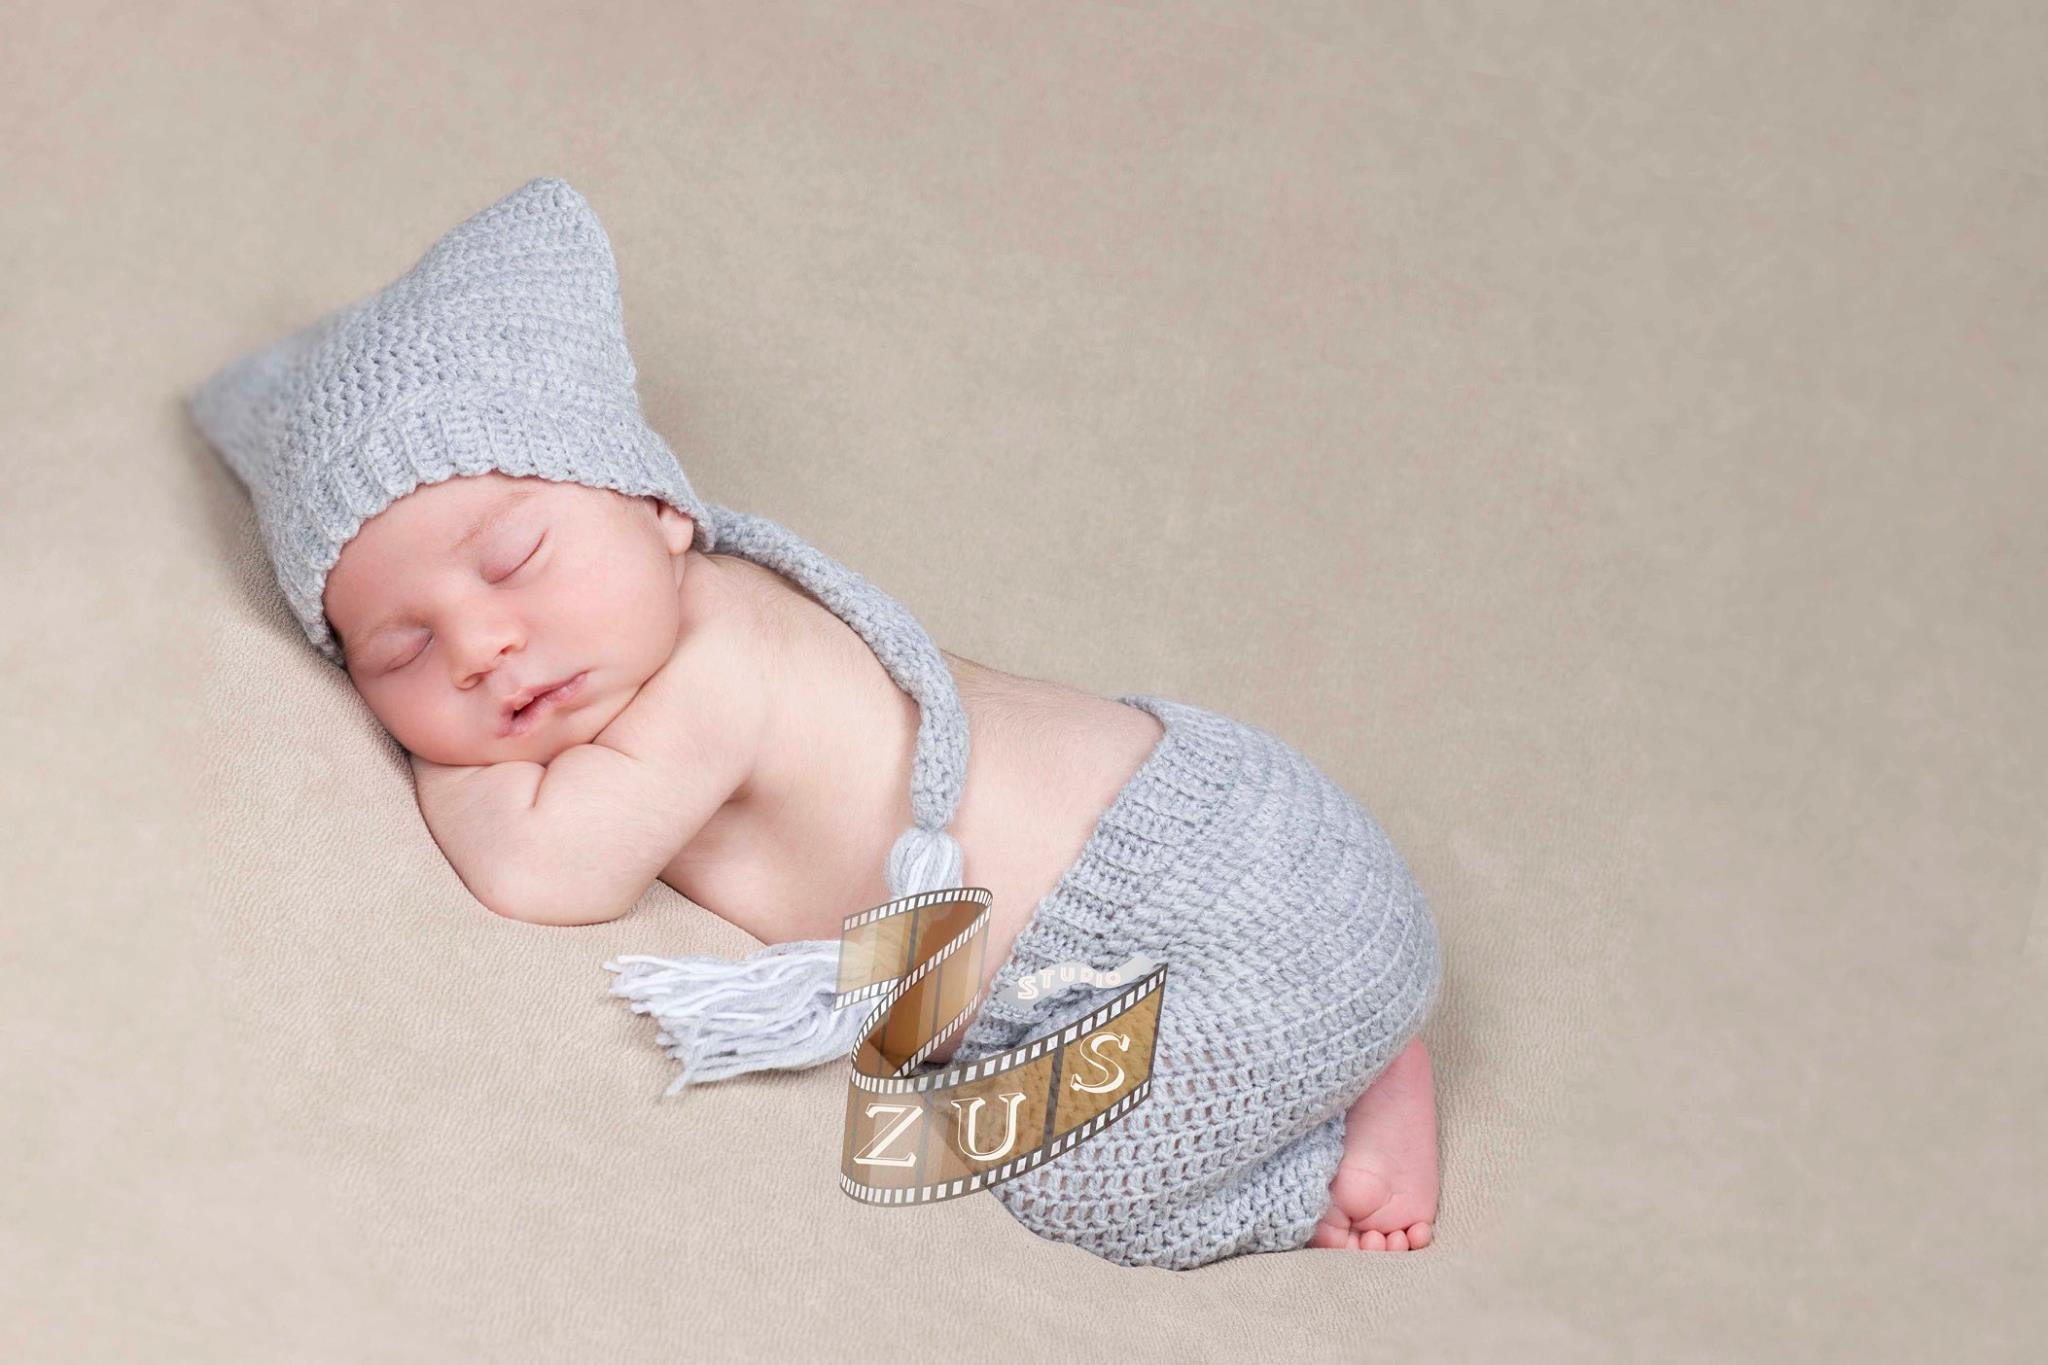 #babyshoot #newbornshoot